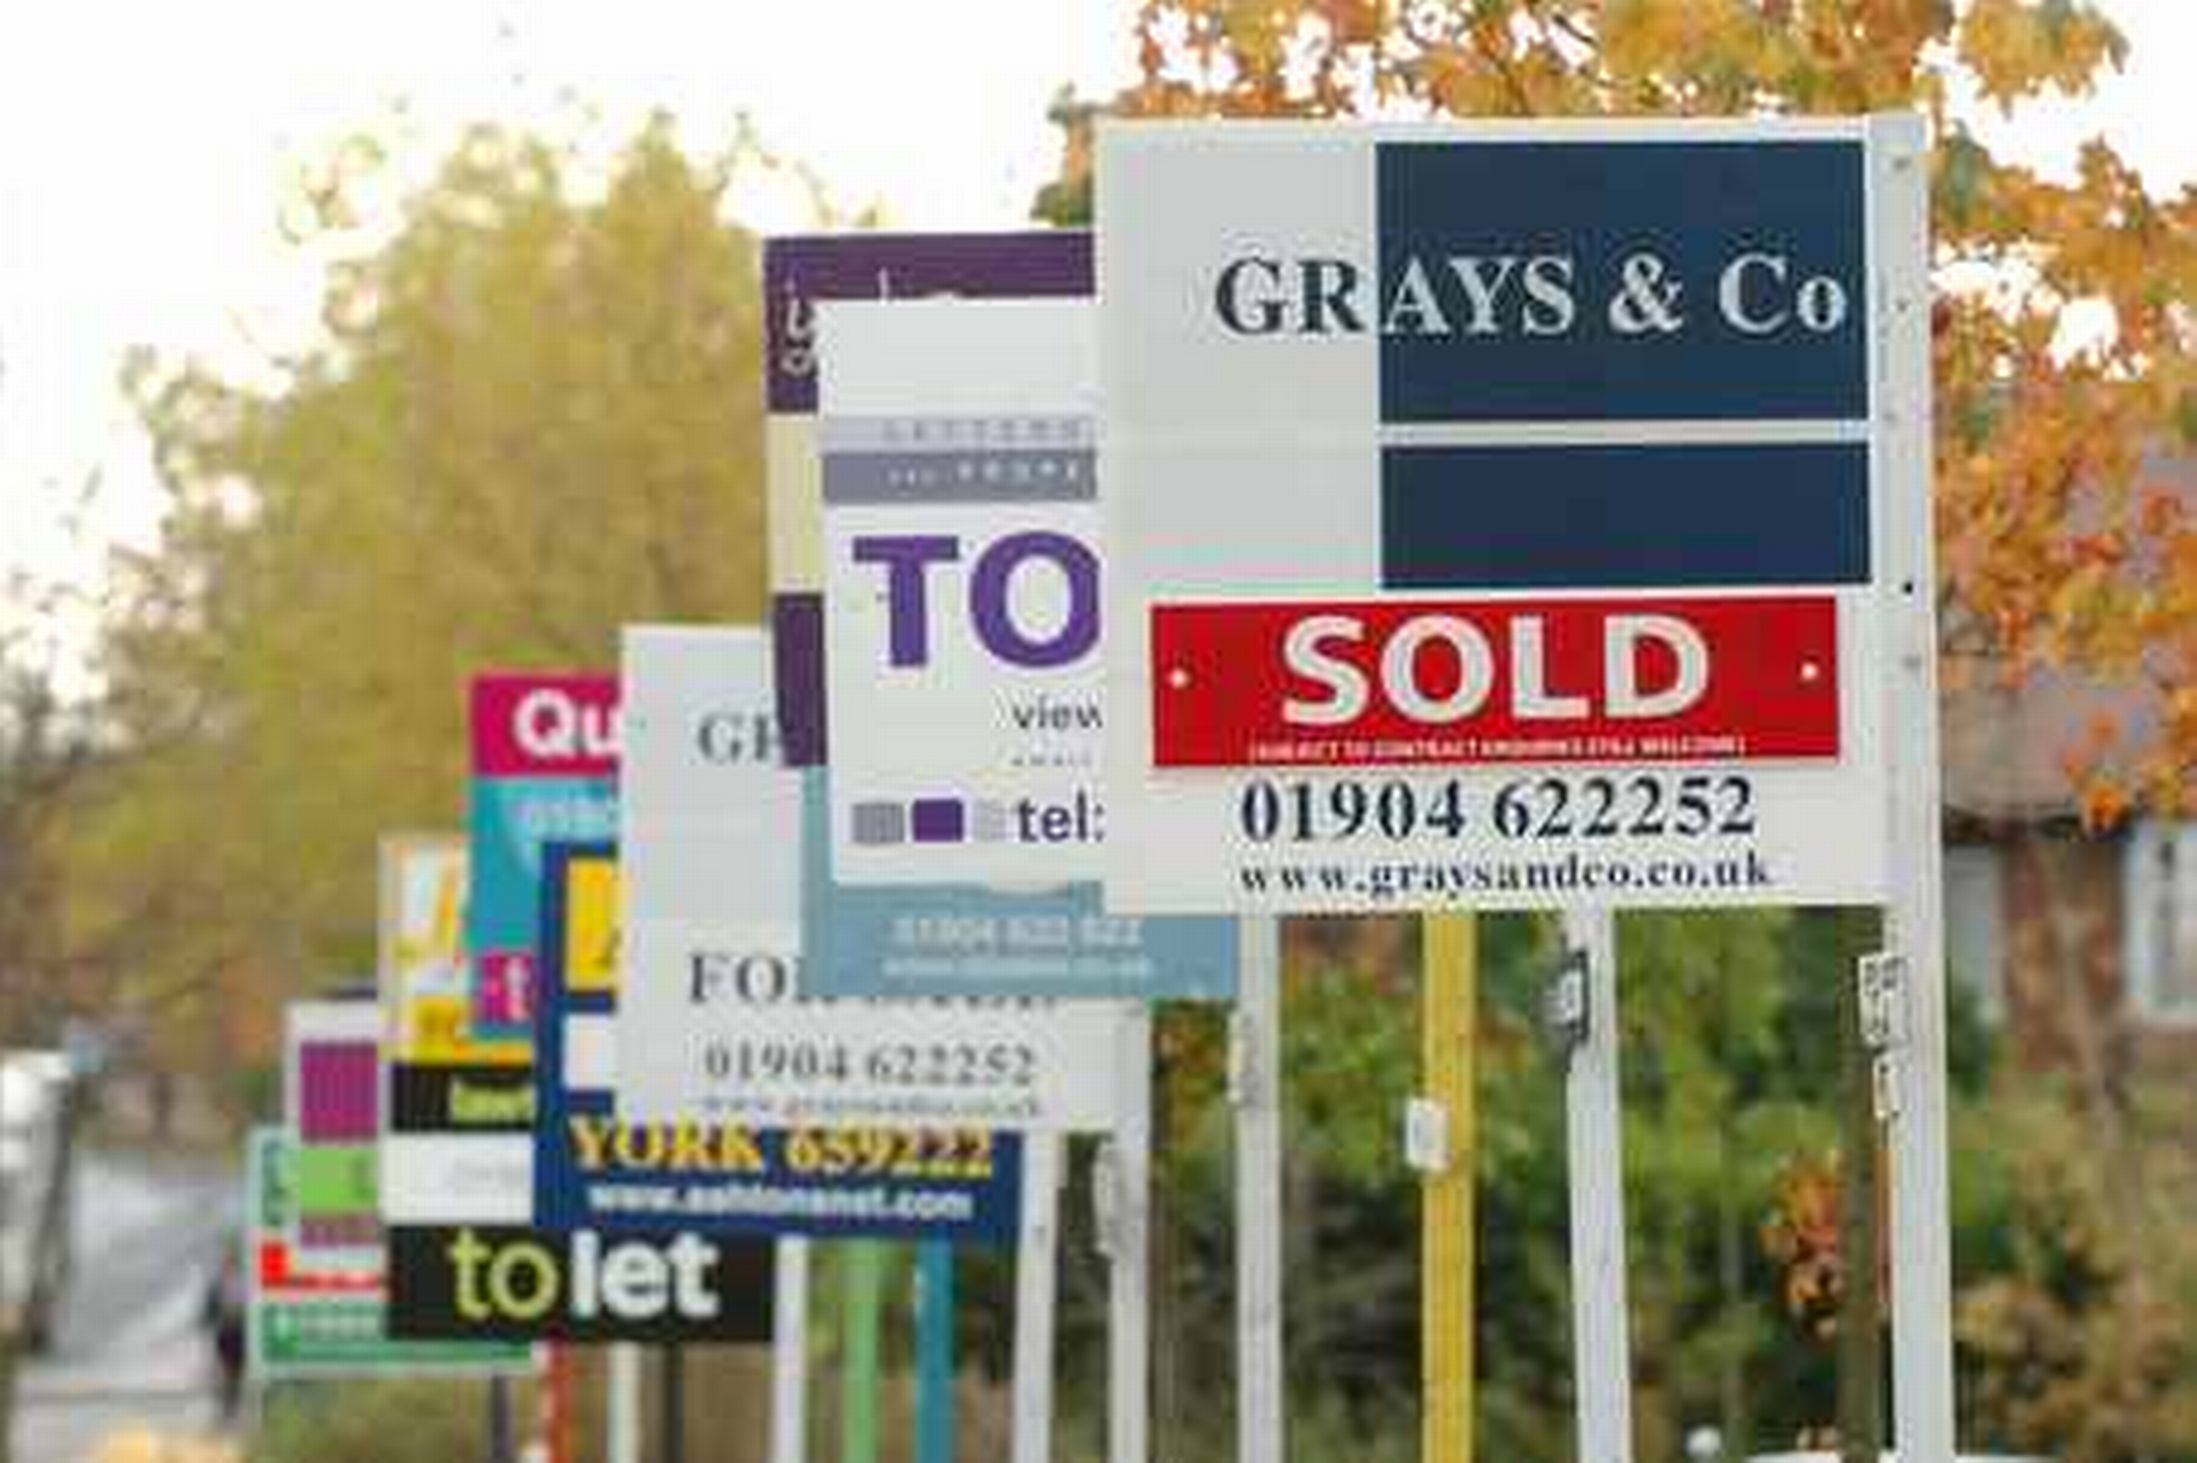 house-prices-for-sale-signs-460-315222115.jpg